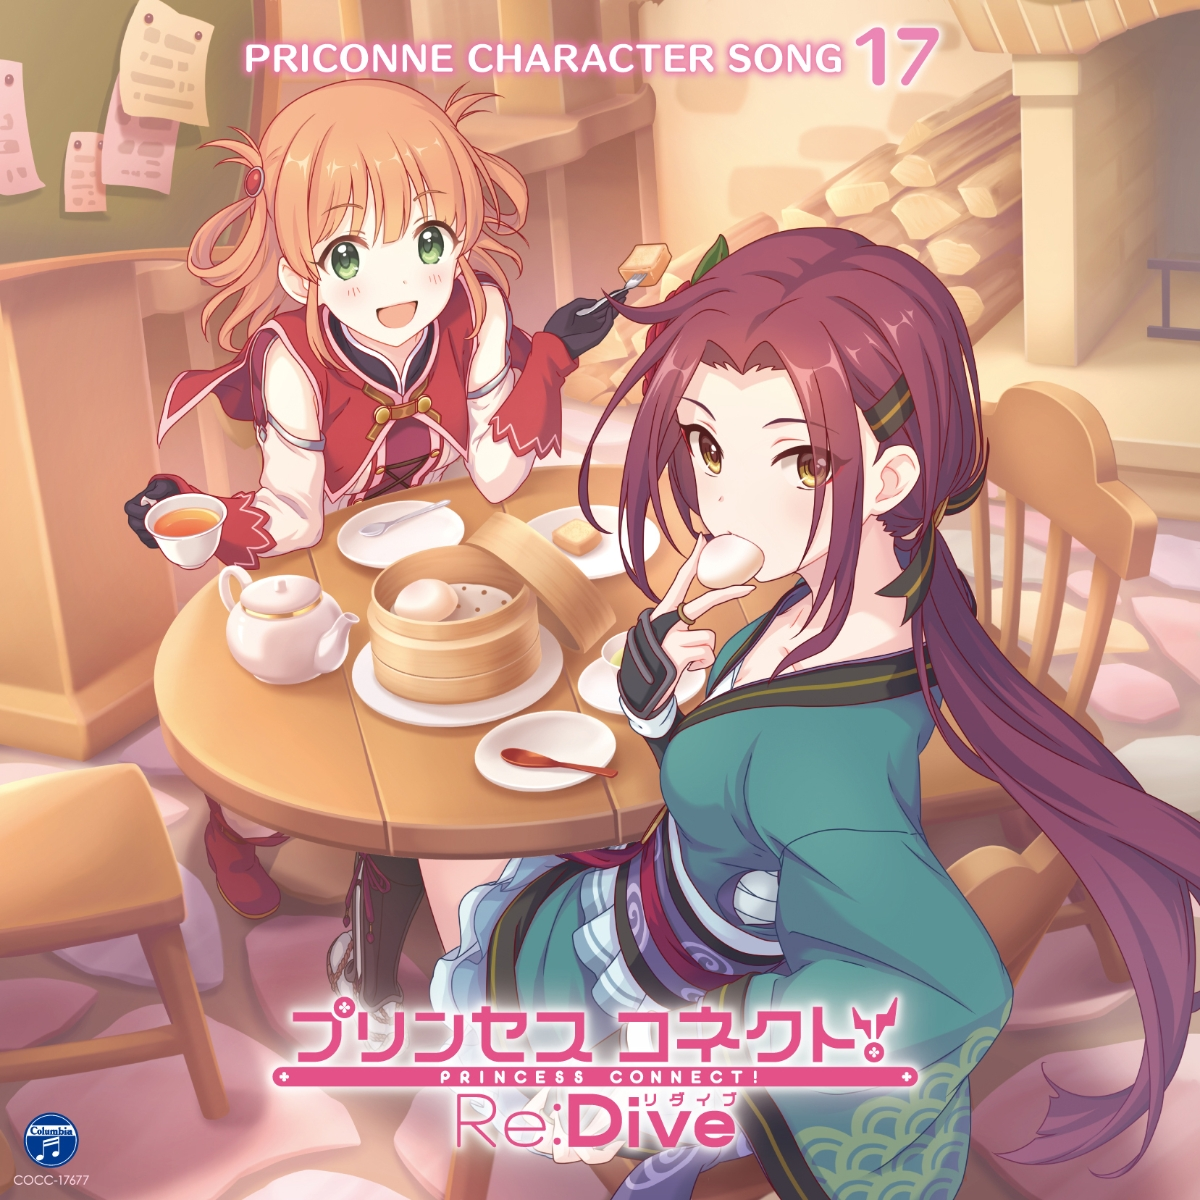 PRINCESS CONNECT! Re:Dive PRICONNE CHARACTER SONG 17  プリンセスコネクト! Re:Dive PRICONNE CHARACTER SONG 17